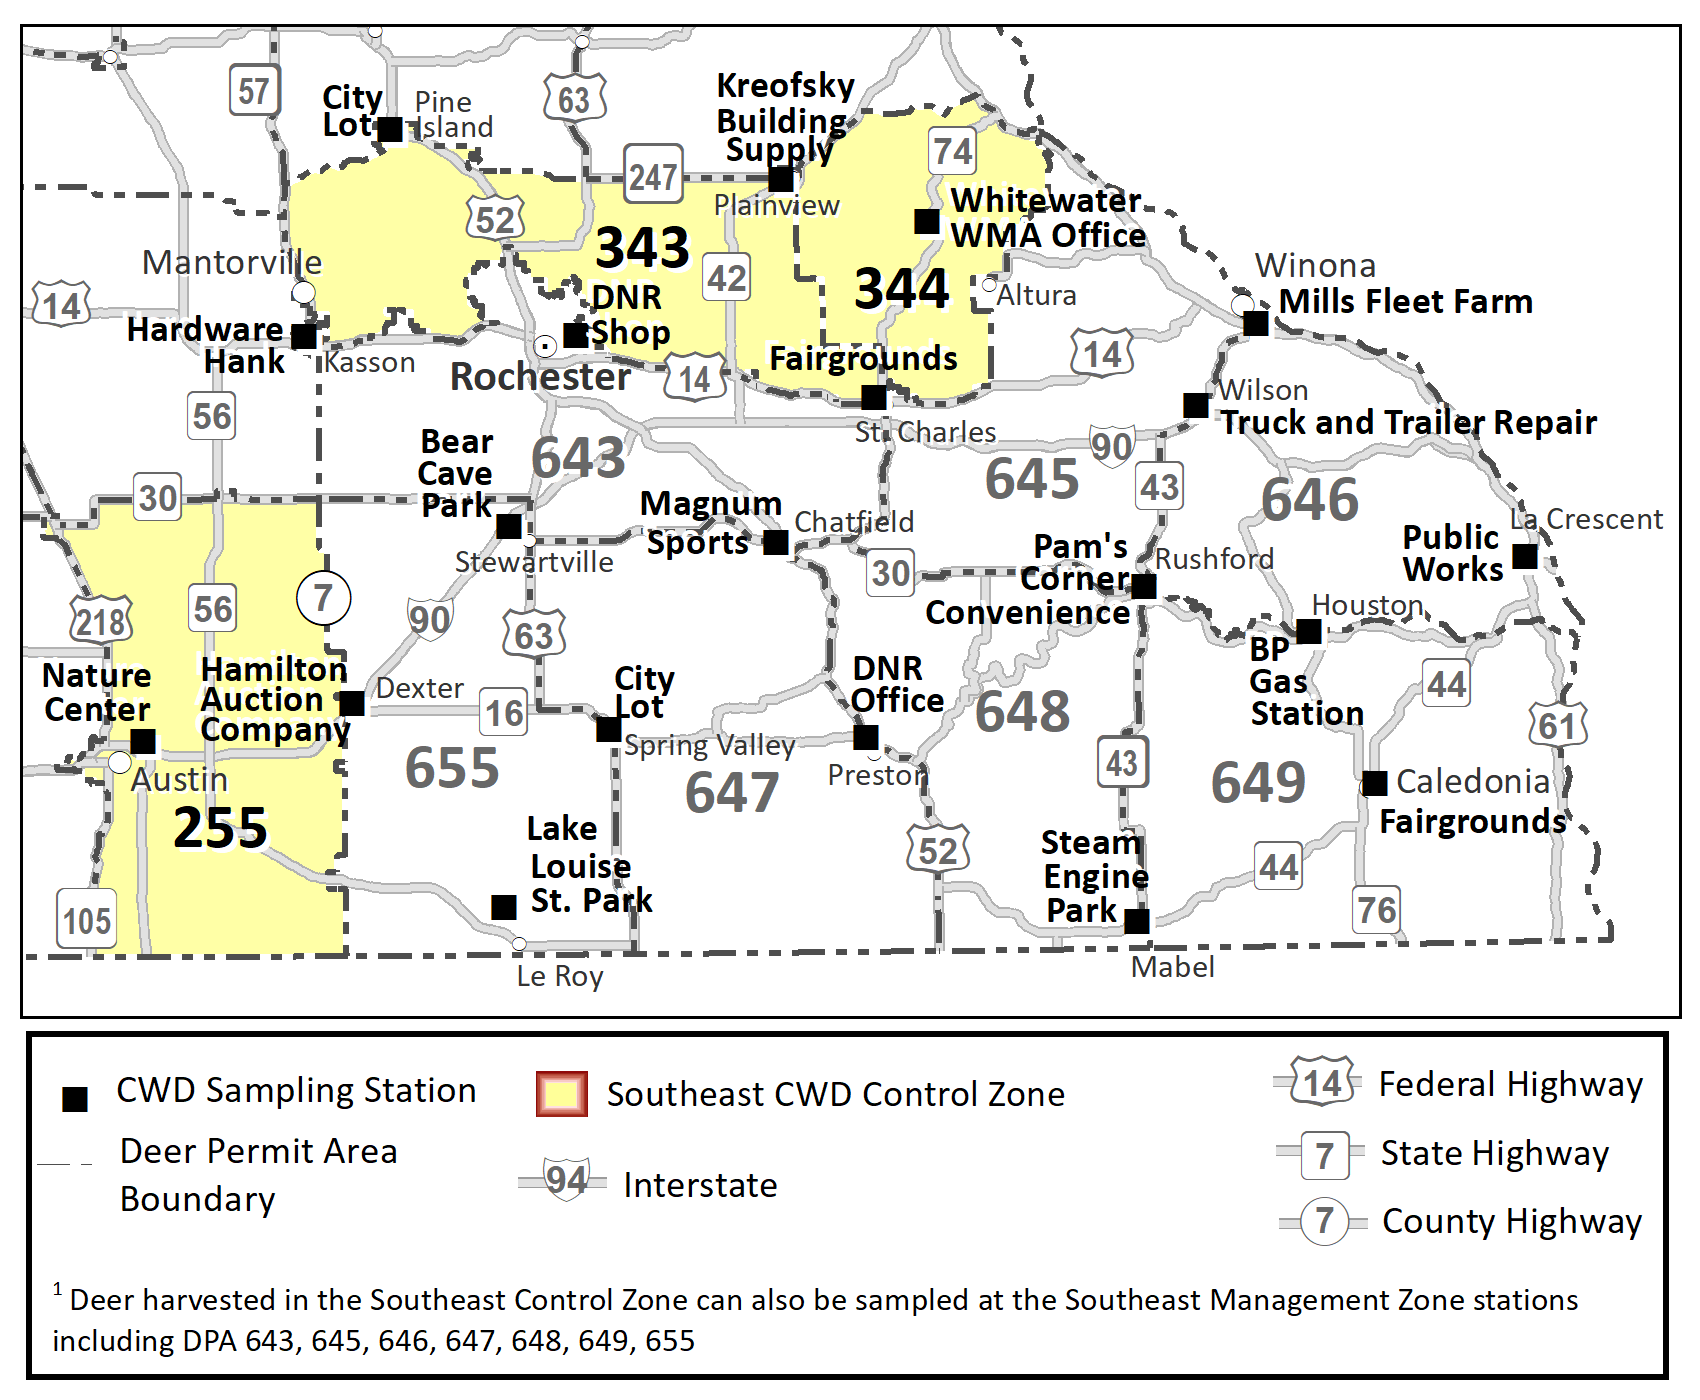 Map highlighting the DPAs included in the southeast CWD control zone (255, 343, 344) and sampling stations within the southeast control and management zones.